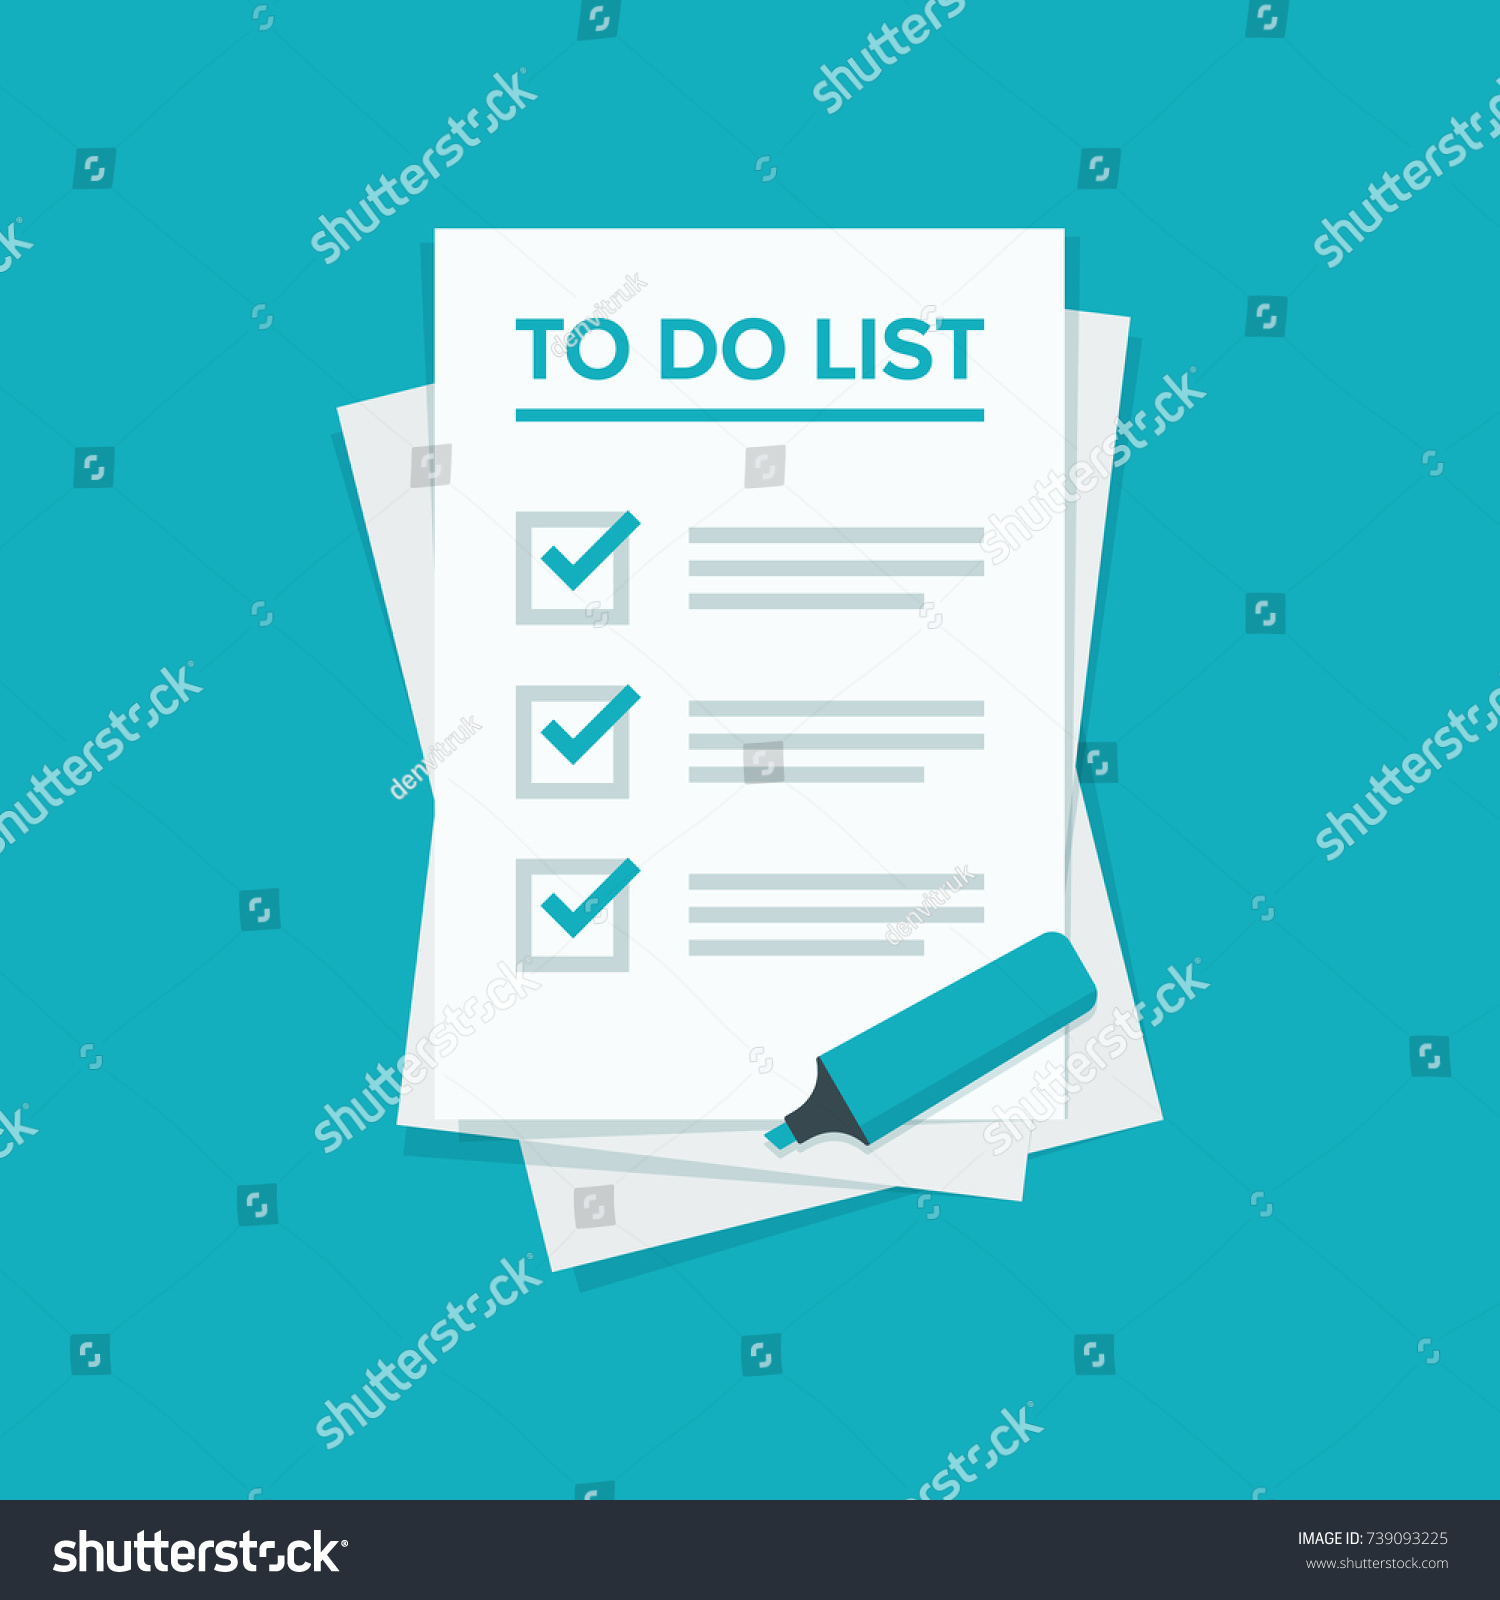 All The Tasks do list planning icon concept all stock vector (royalty free